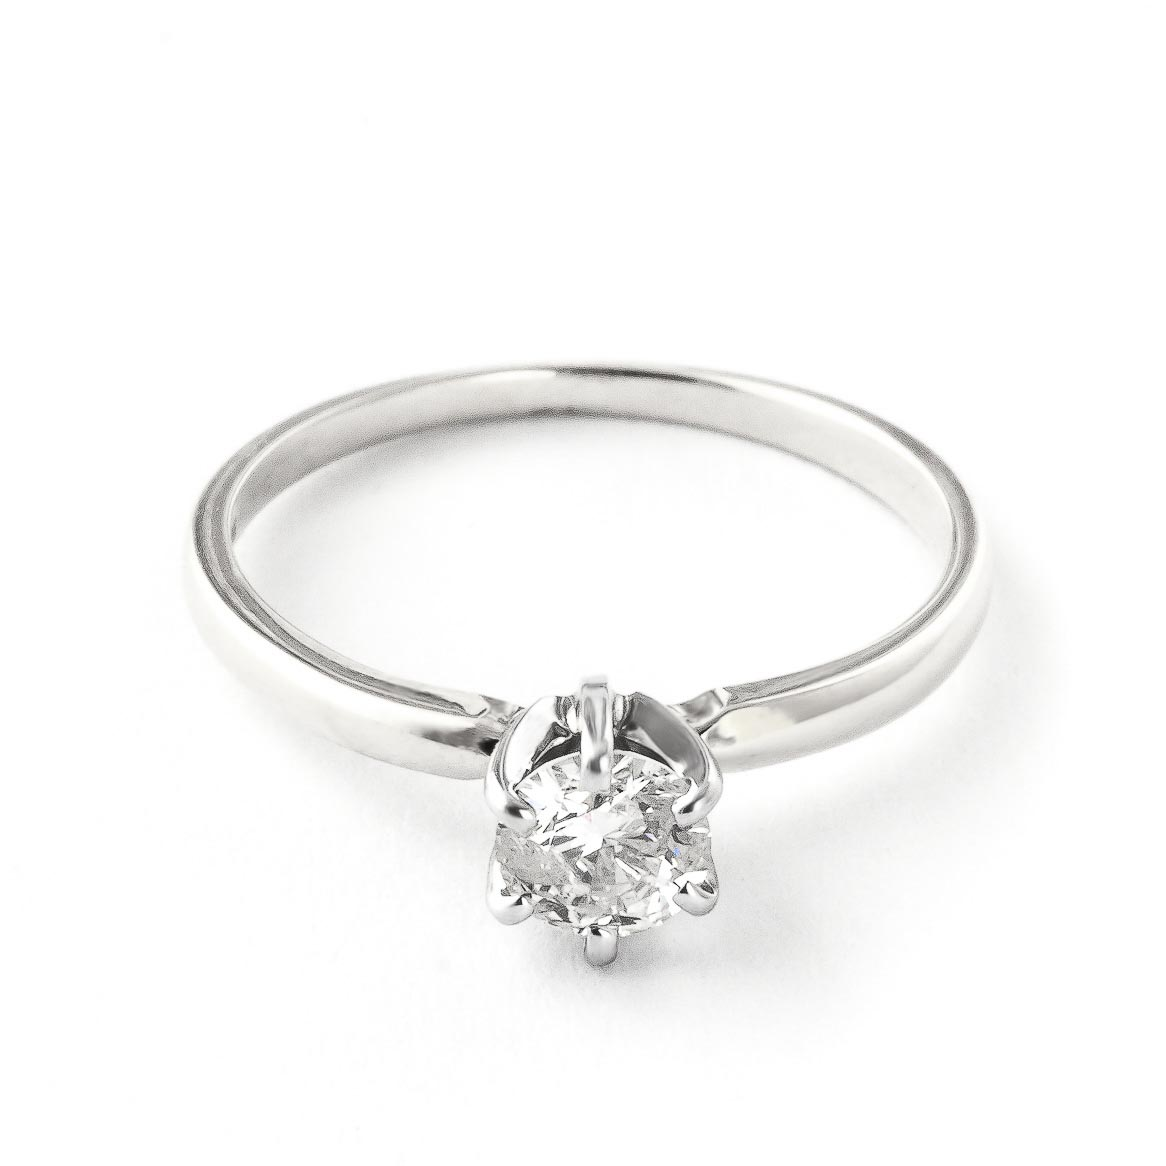 Diamond Solitaire Ring 0.4 ct in Sterling Silver